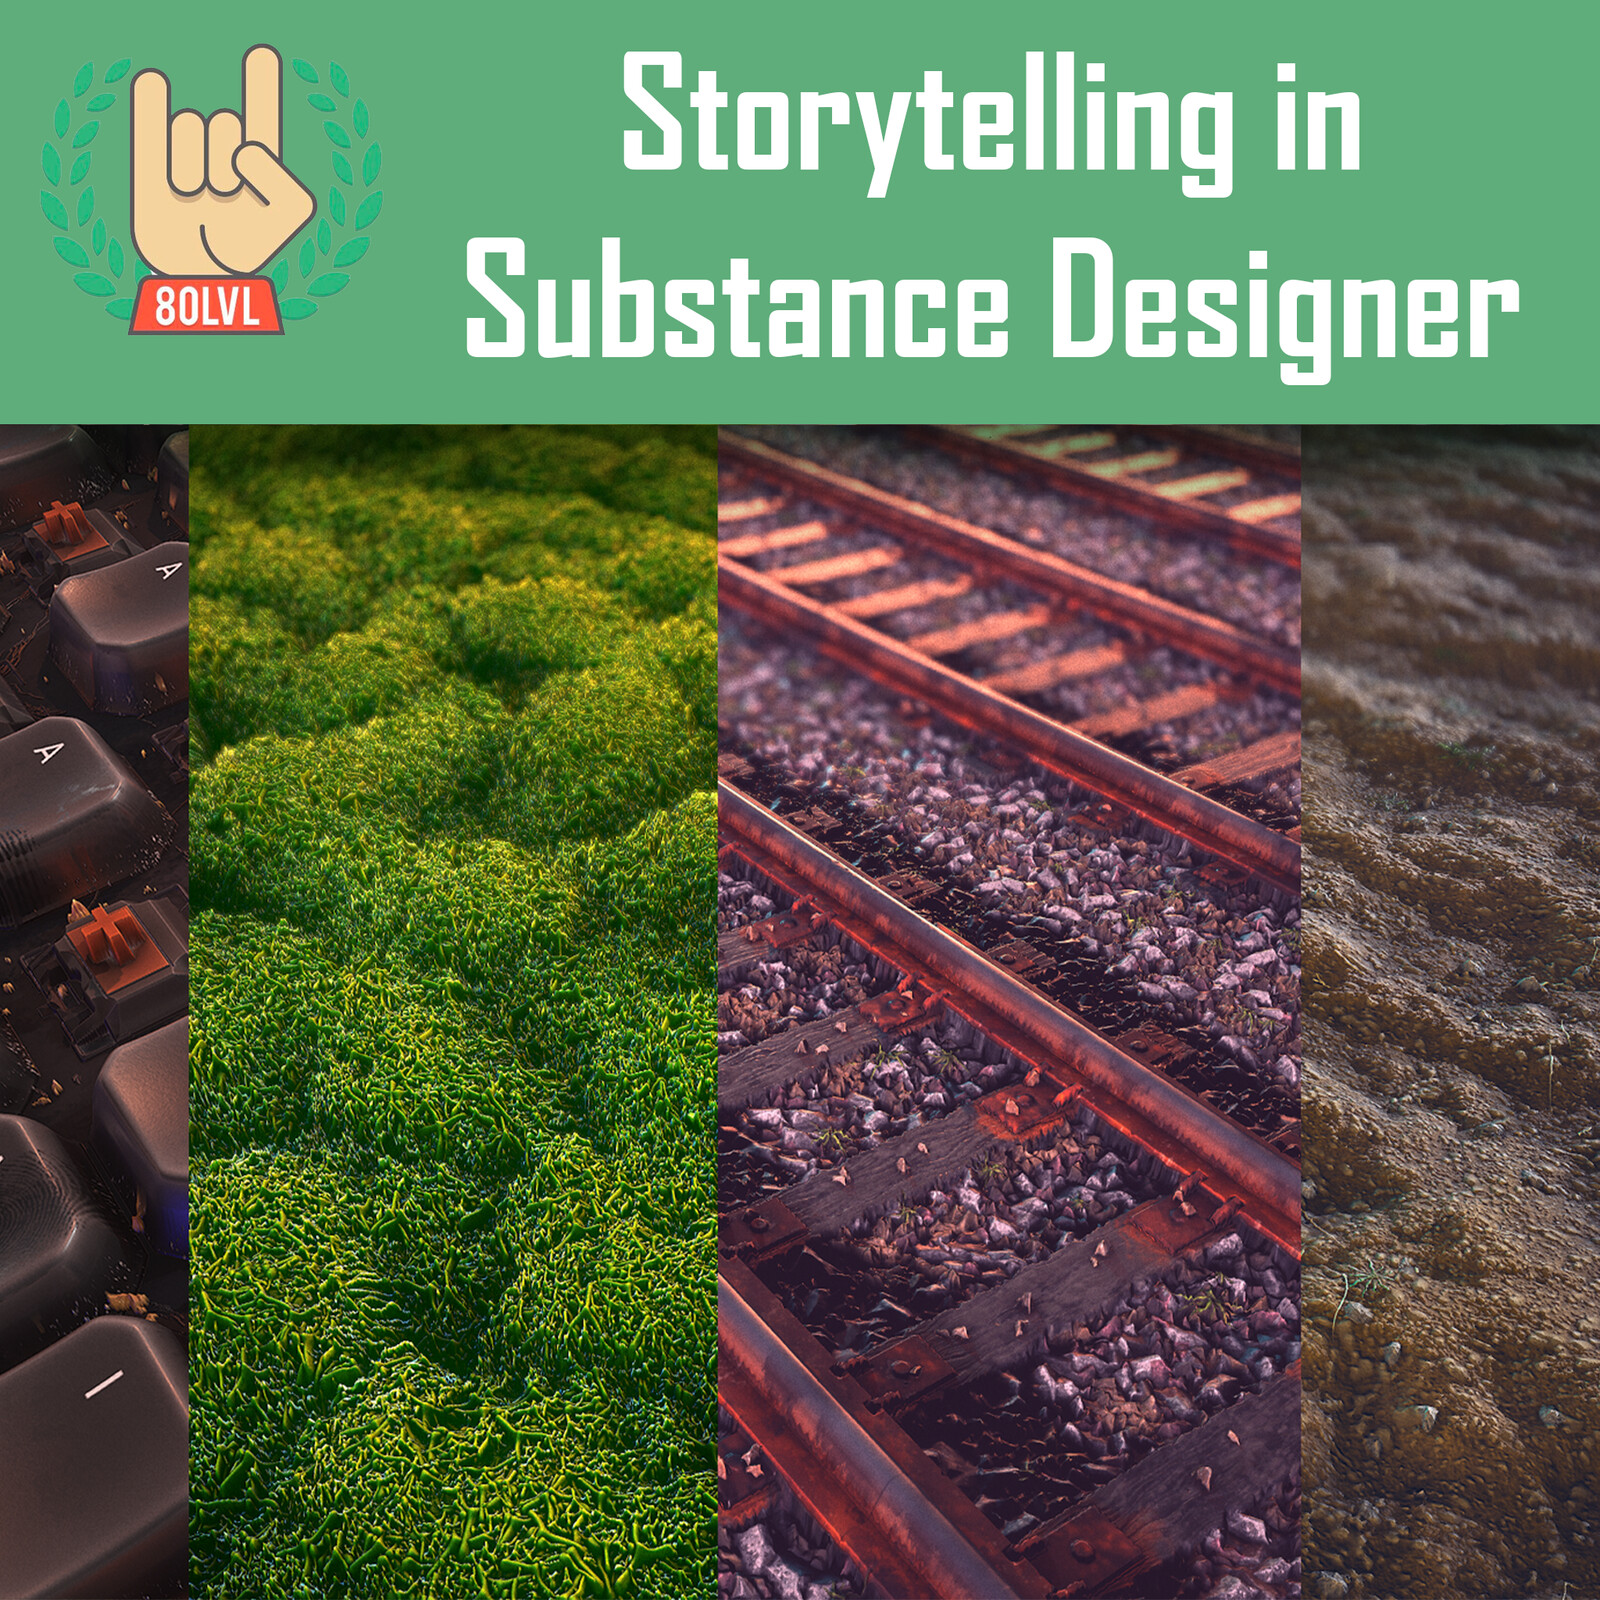 Storytelling and Tips in Substance Designer - 80 Level